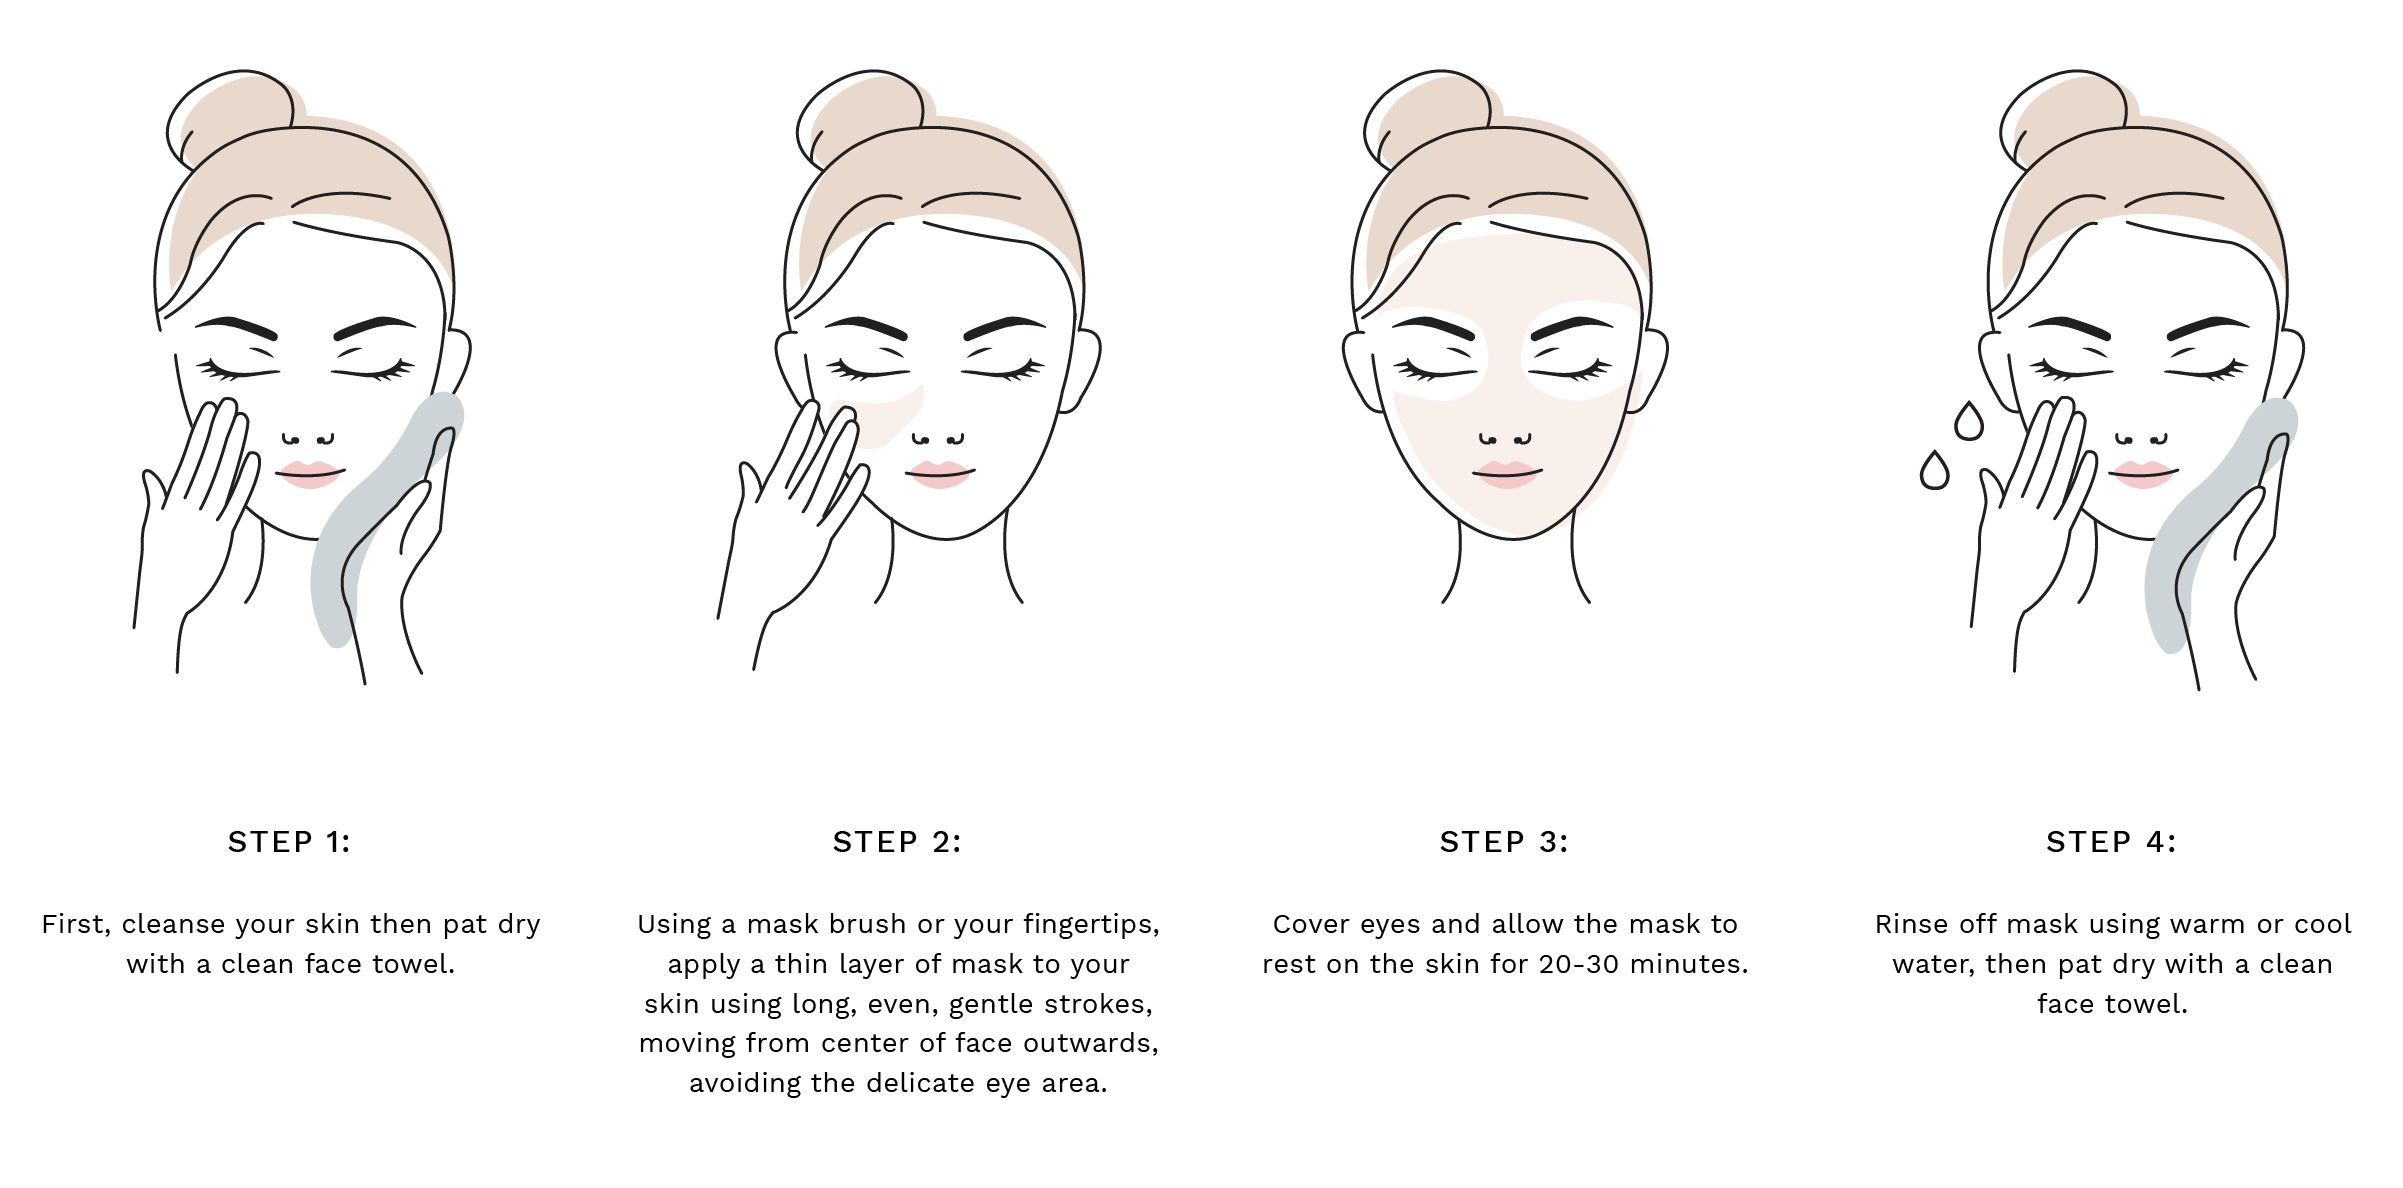 Step 1: First, cleanse your skin then pat dry with a clean face towel. Step 2: Using a mask brush or your fingertips, apply a thin layer of mask to your skin using long, even, gentle strokes, moving from center of face outwards, avoiding the delicate eye area. Step 3: Cover eyes and allow the mask to rest on the skin for 20-30 minutes. Step 4: Rinse off mask using warm or cool water, then pat dry with a clean face towel.